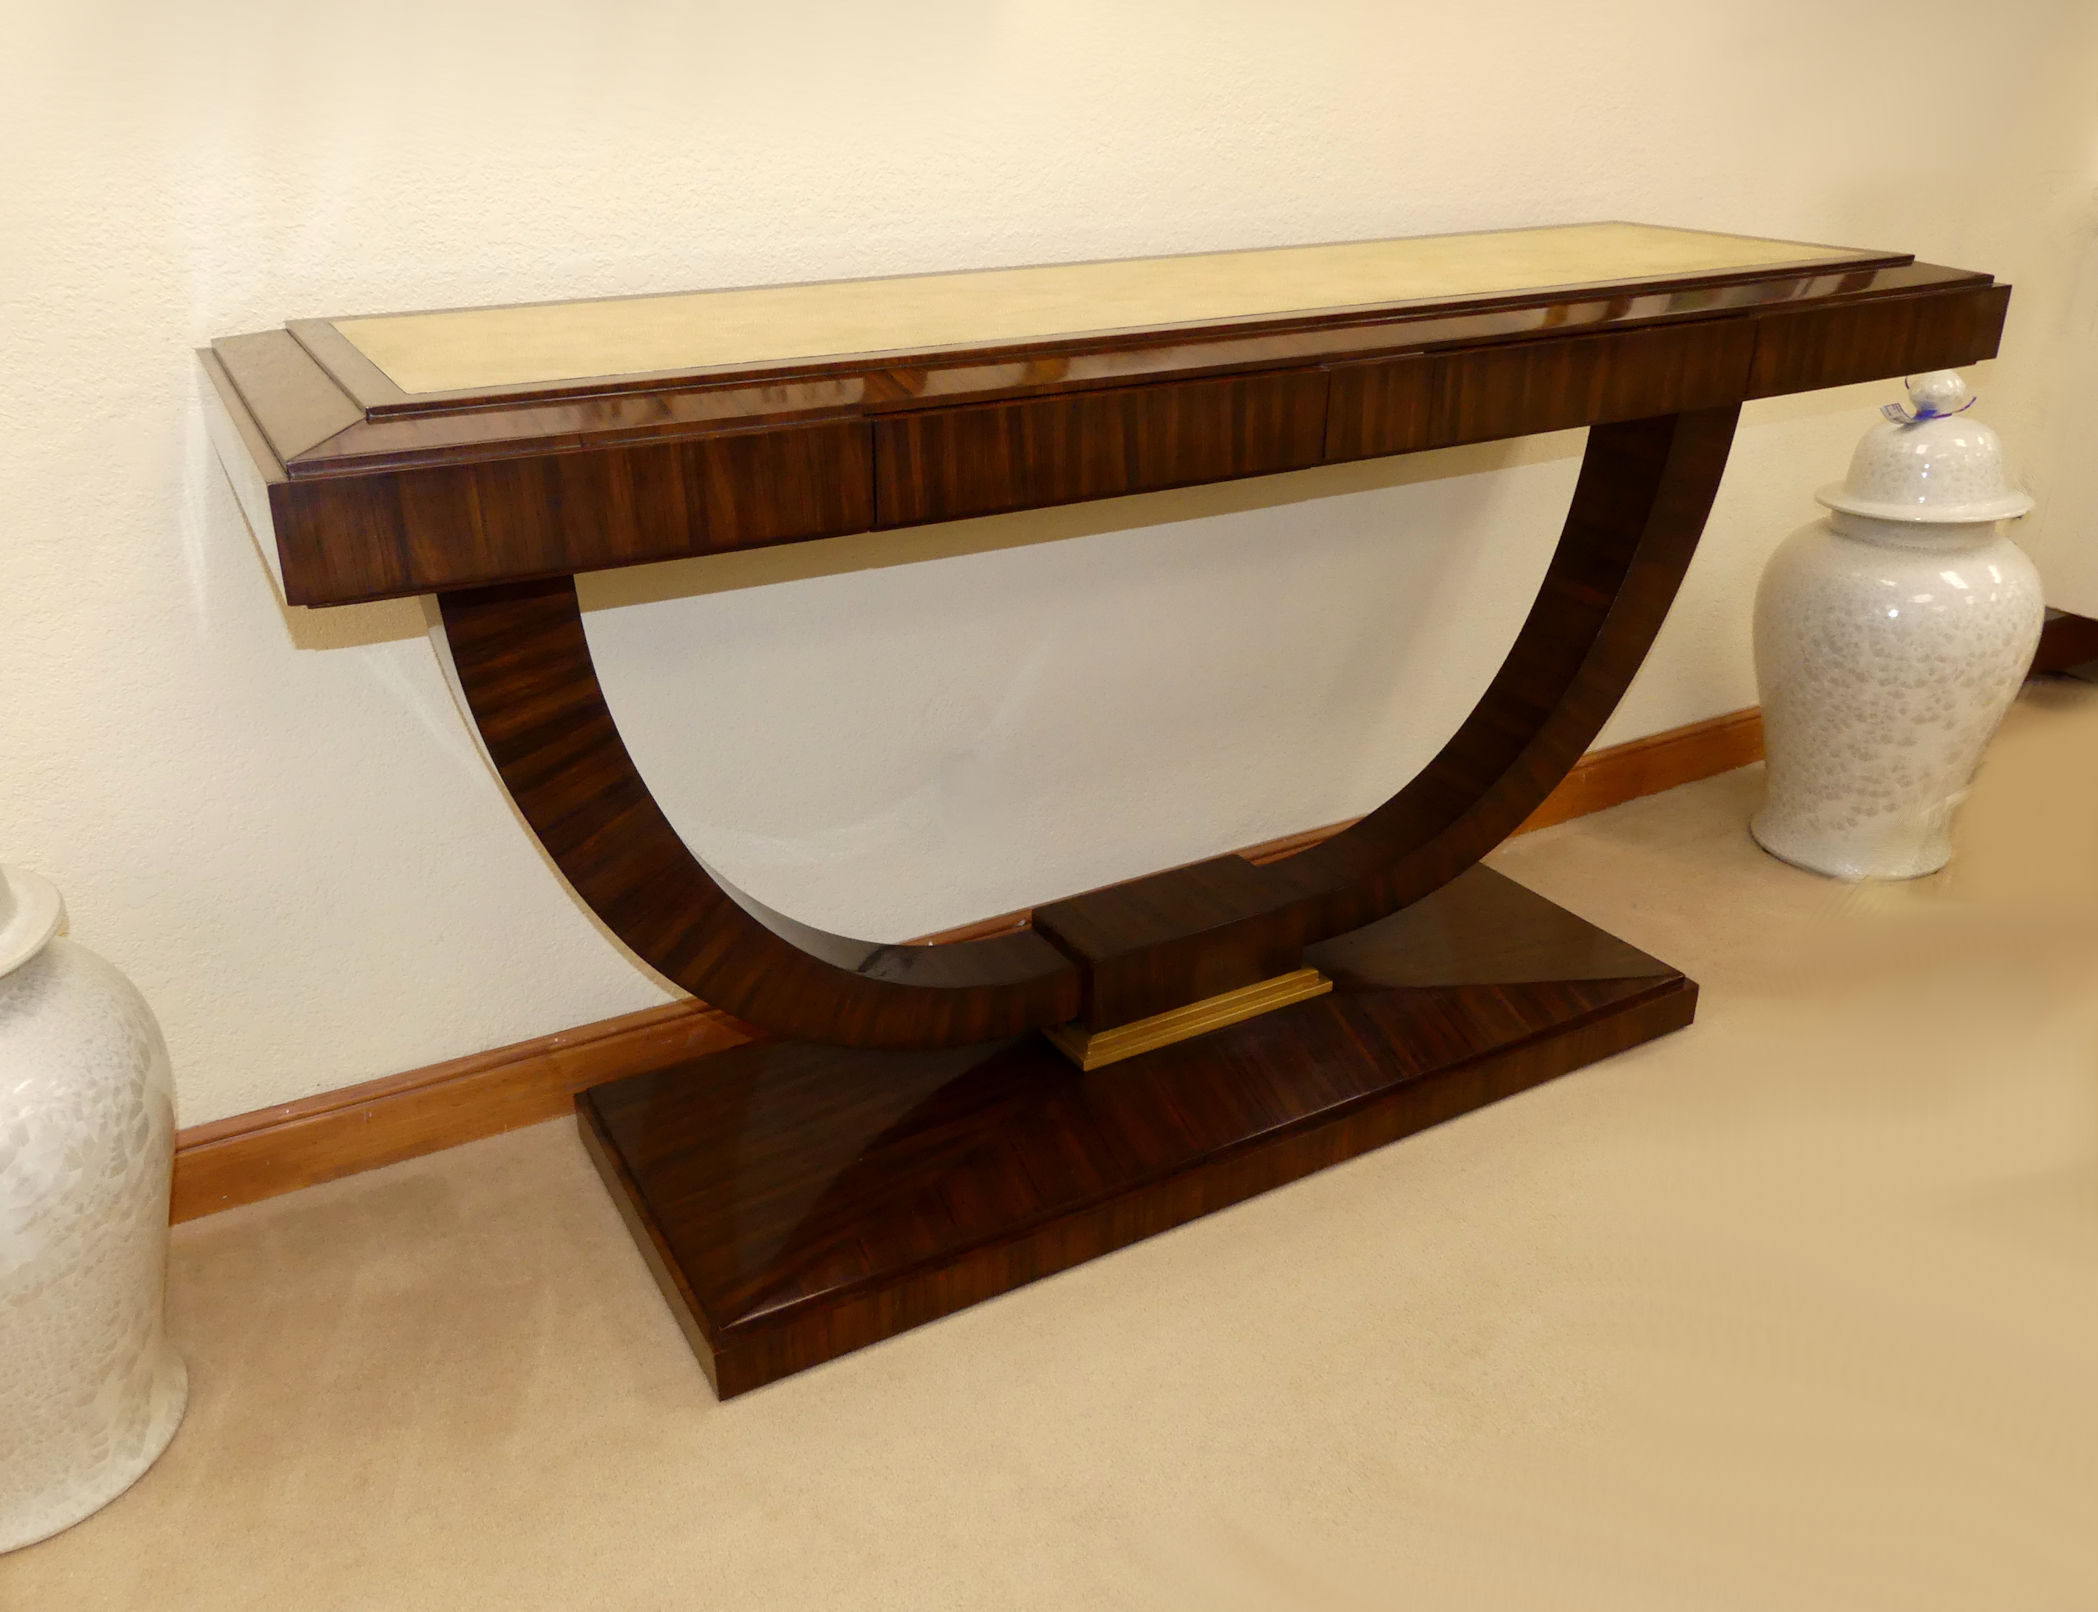 SOLD  Maitland Smith Contemporary Rosewood Console Table with Natural Shagreen Inlay